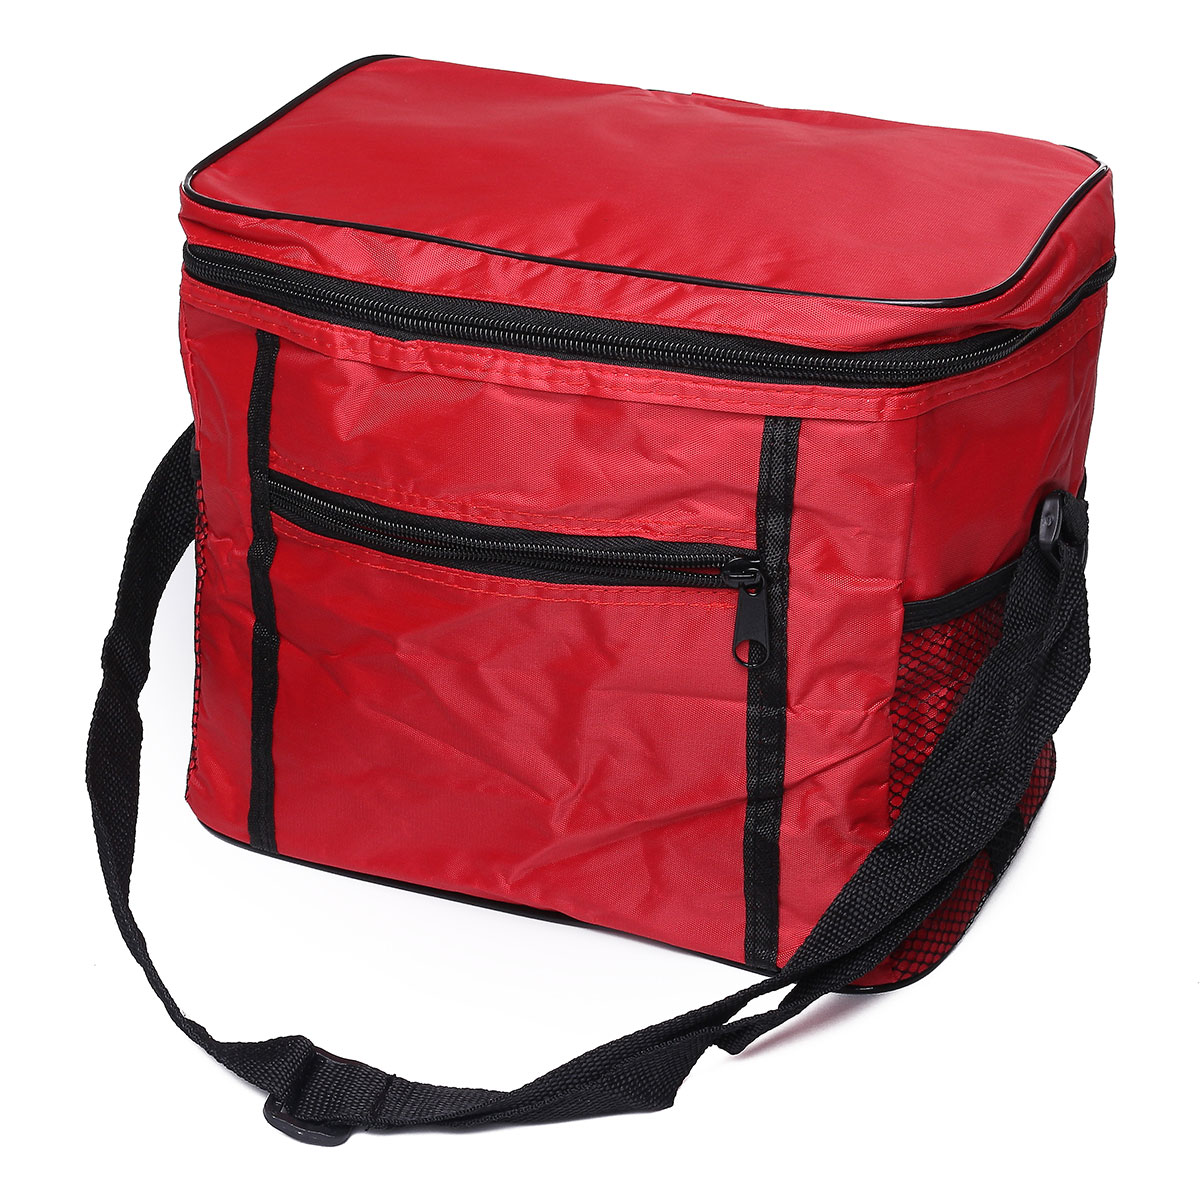 Lunch Bag Waterproof Thermal Portable Outdoor Cooler Insulated Picnic Camping Hiking Lunch Box